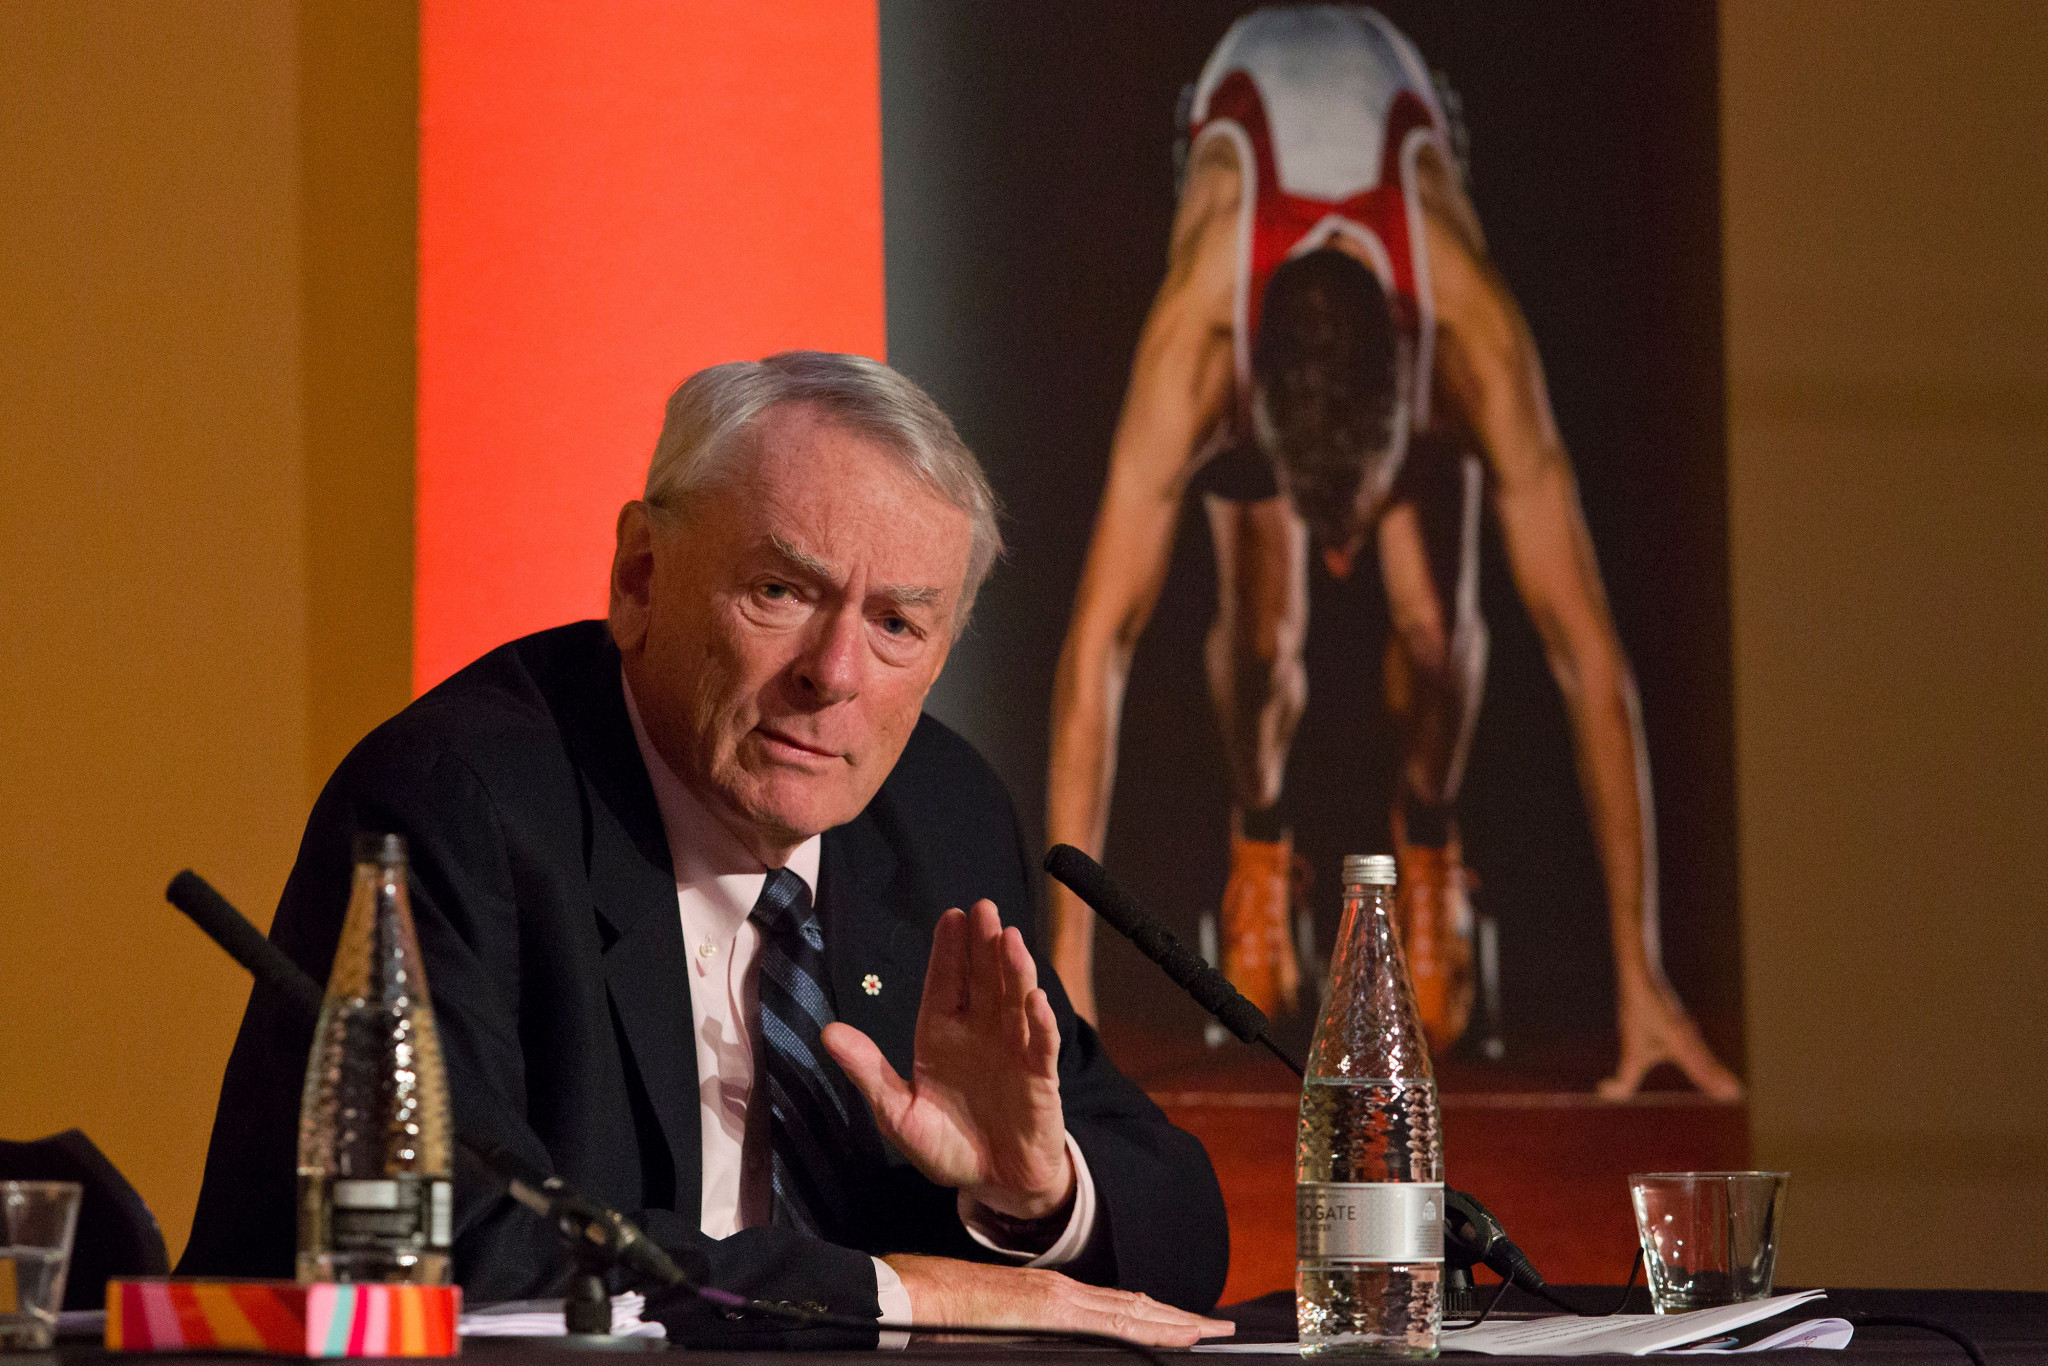 Former WADA chairman Dick Pound has backed RUSADA's reinstatement, saying it will help catch more cheats ©Getty Images